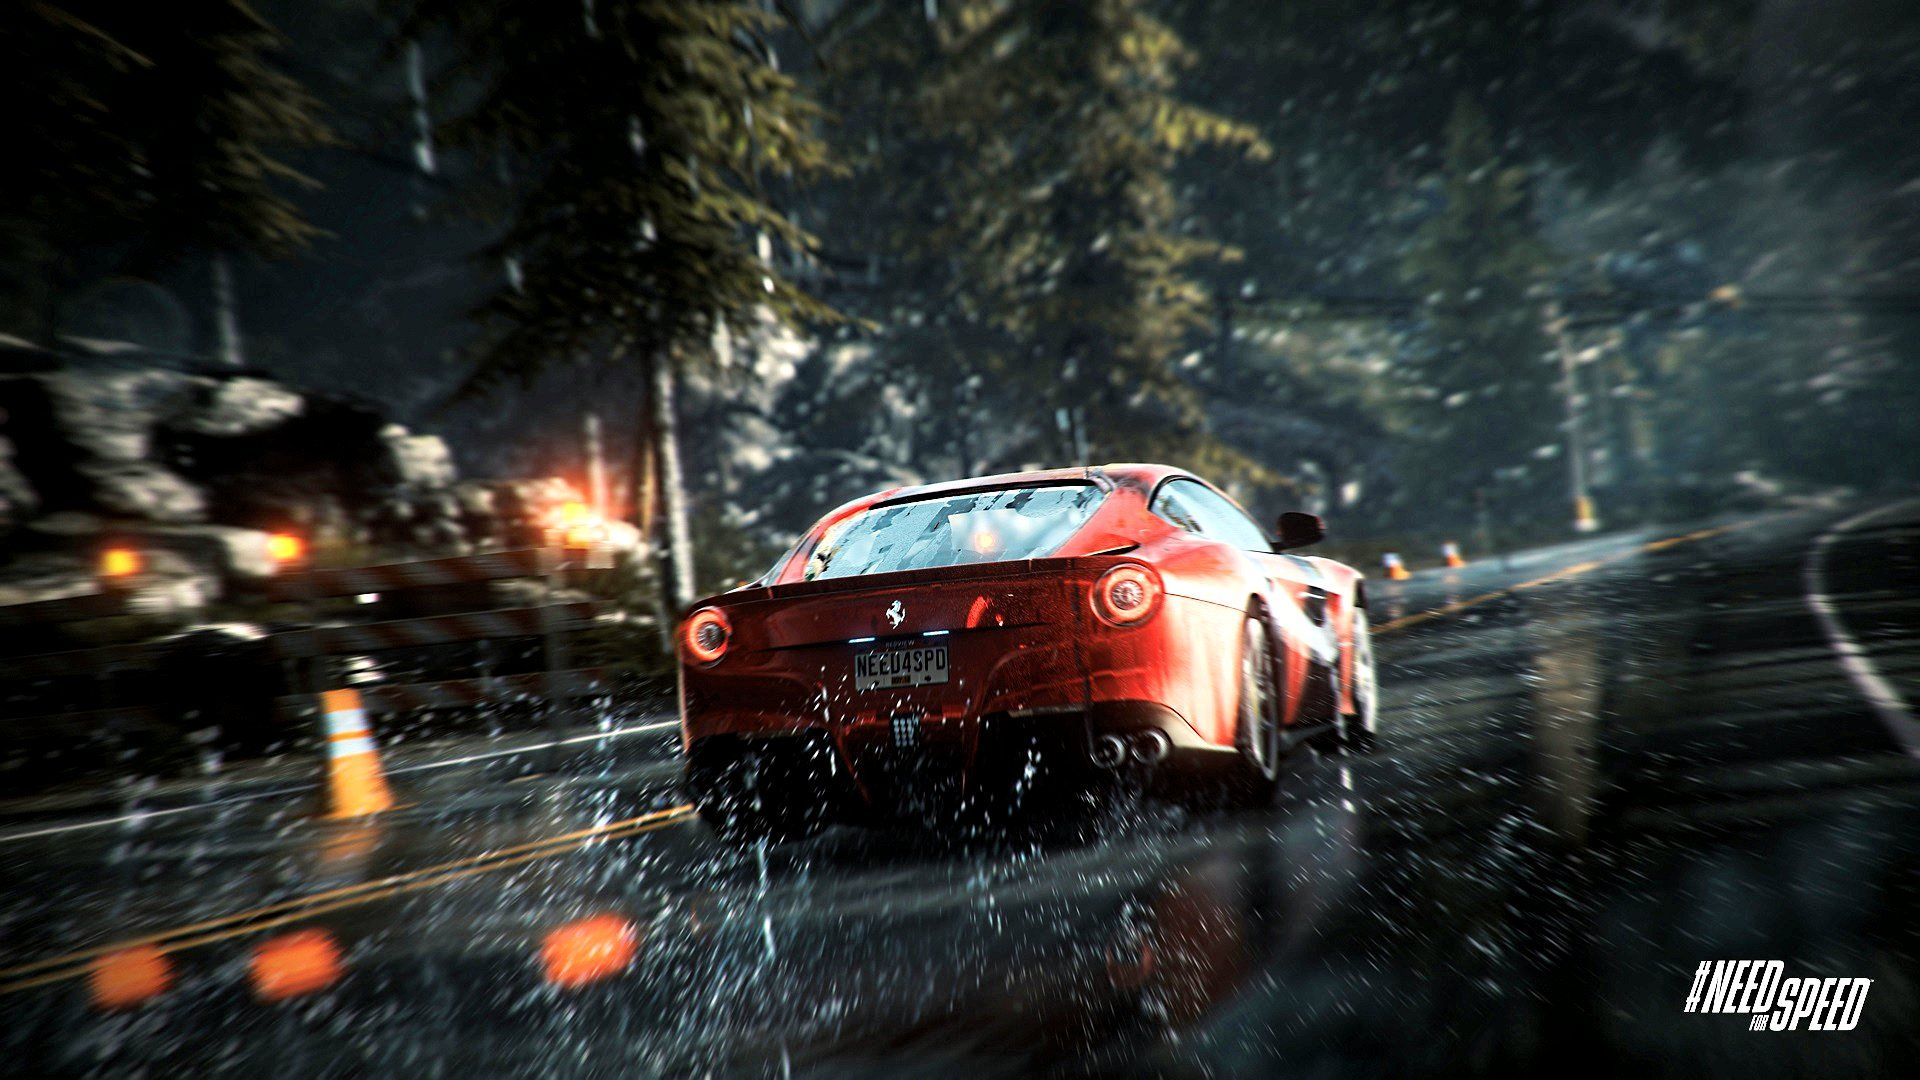 Need For Speed World Poster Hd Wallpaper Wallpaperfx Need